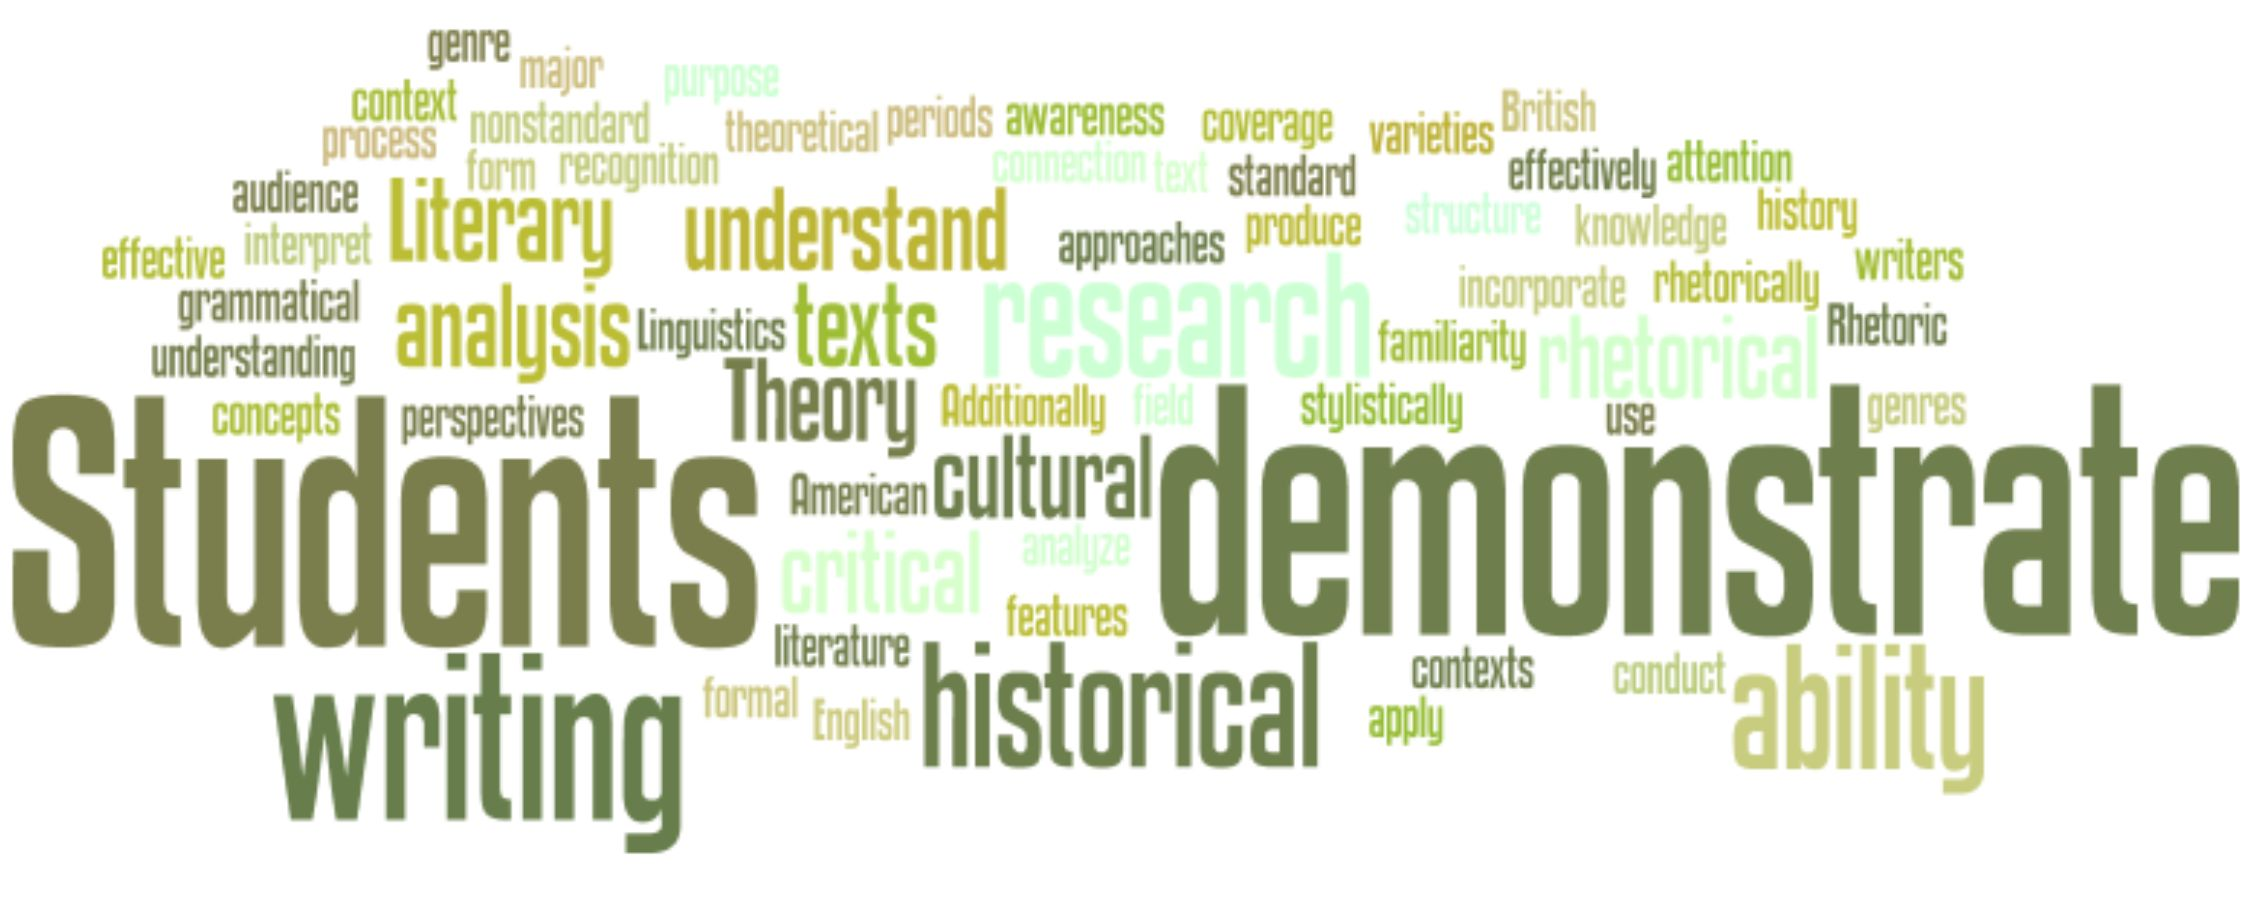 Wordle: English Learning Outcomes